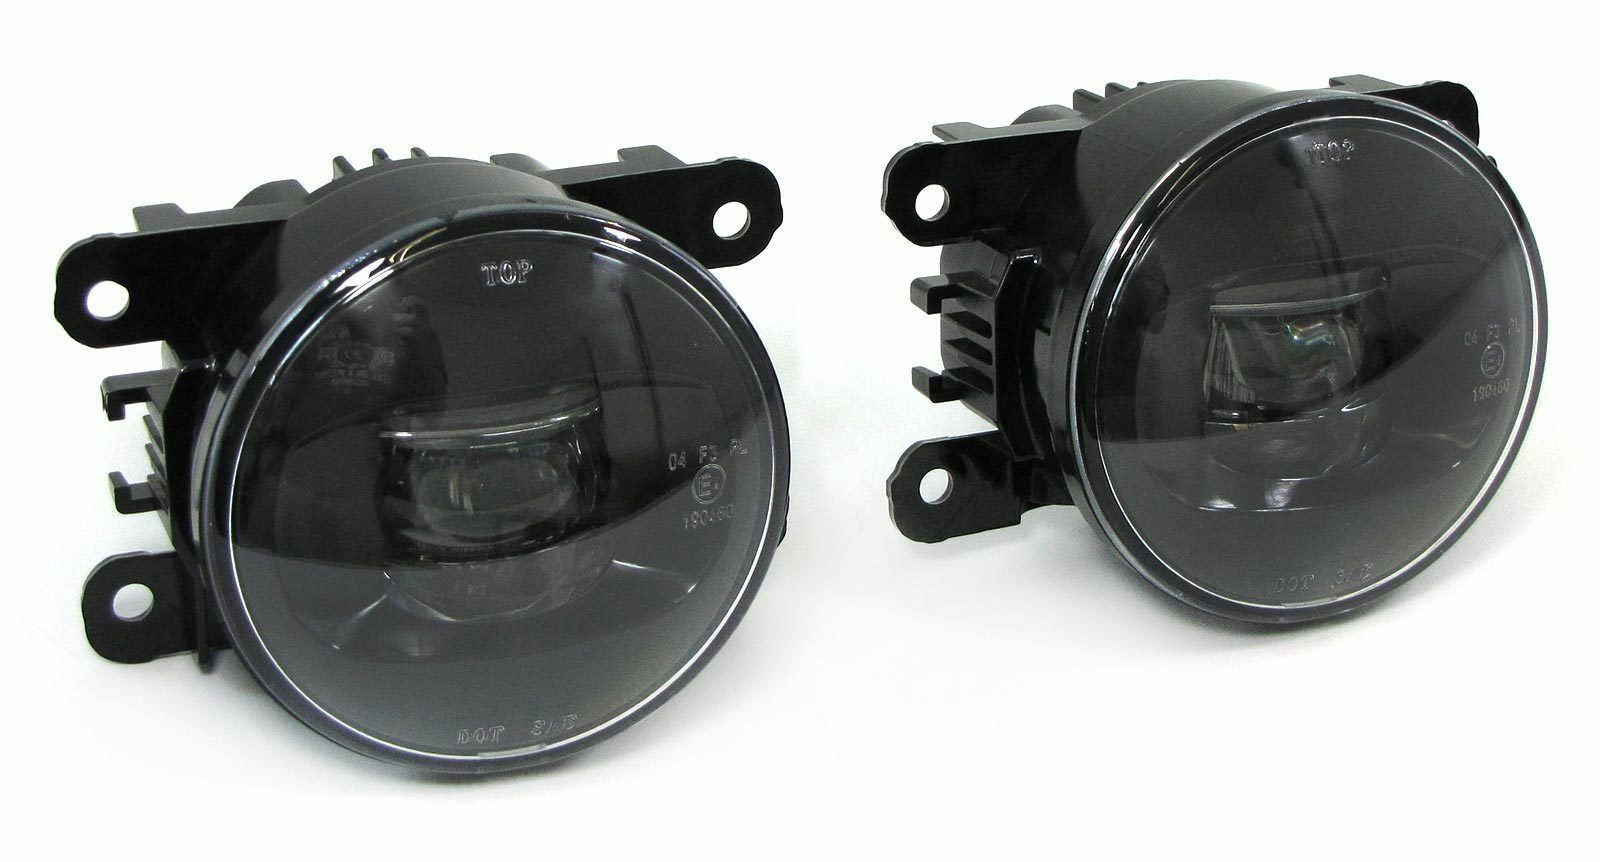 Smoked Led Fog Lights Vauxhall Agila Corsa D Astra G Vectra C Zafira Light Wiring Diagram 1 Of 1only Available